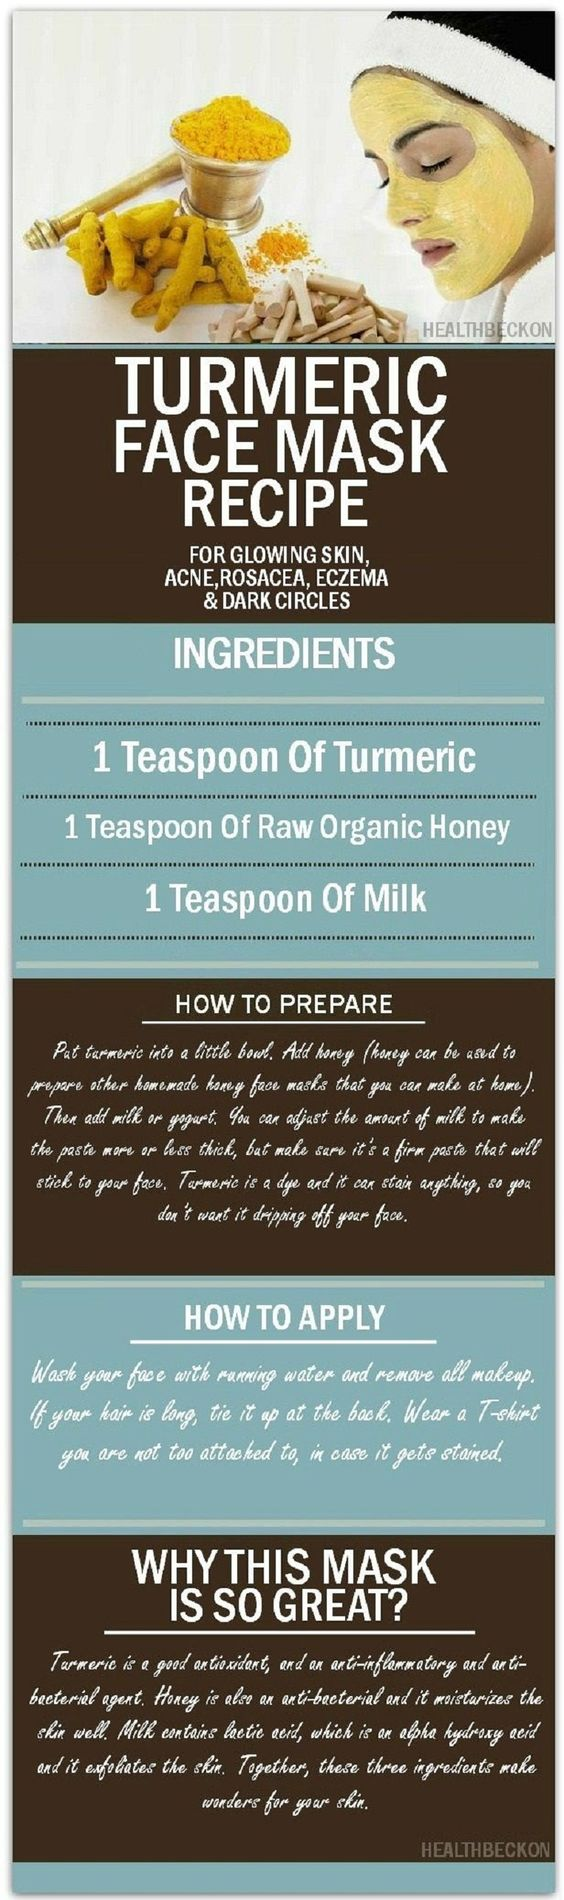 Turmeric Face Mask Recipe for Glowing Skin, Acne, Rosacea, Eczema and Dark Circles - 15 Ultimate Clear Skin Tips, Tricks and DIYs | GleamItUp: